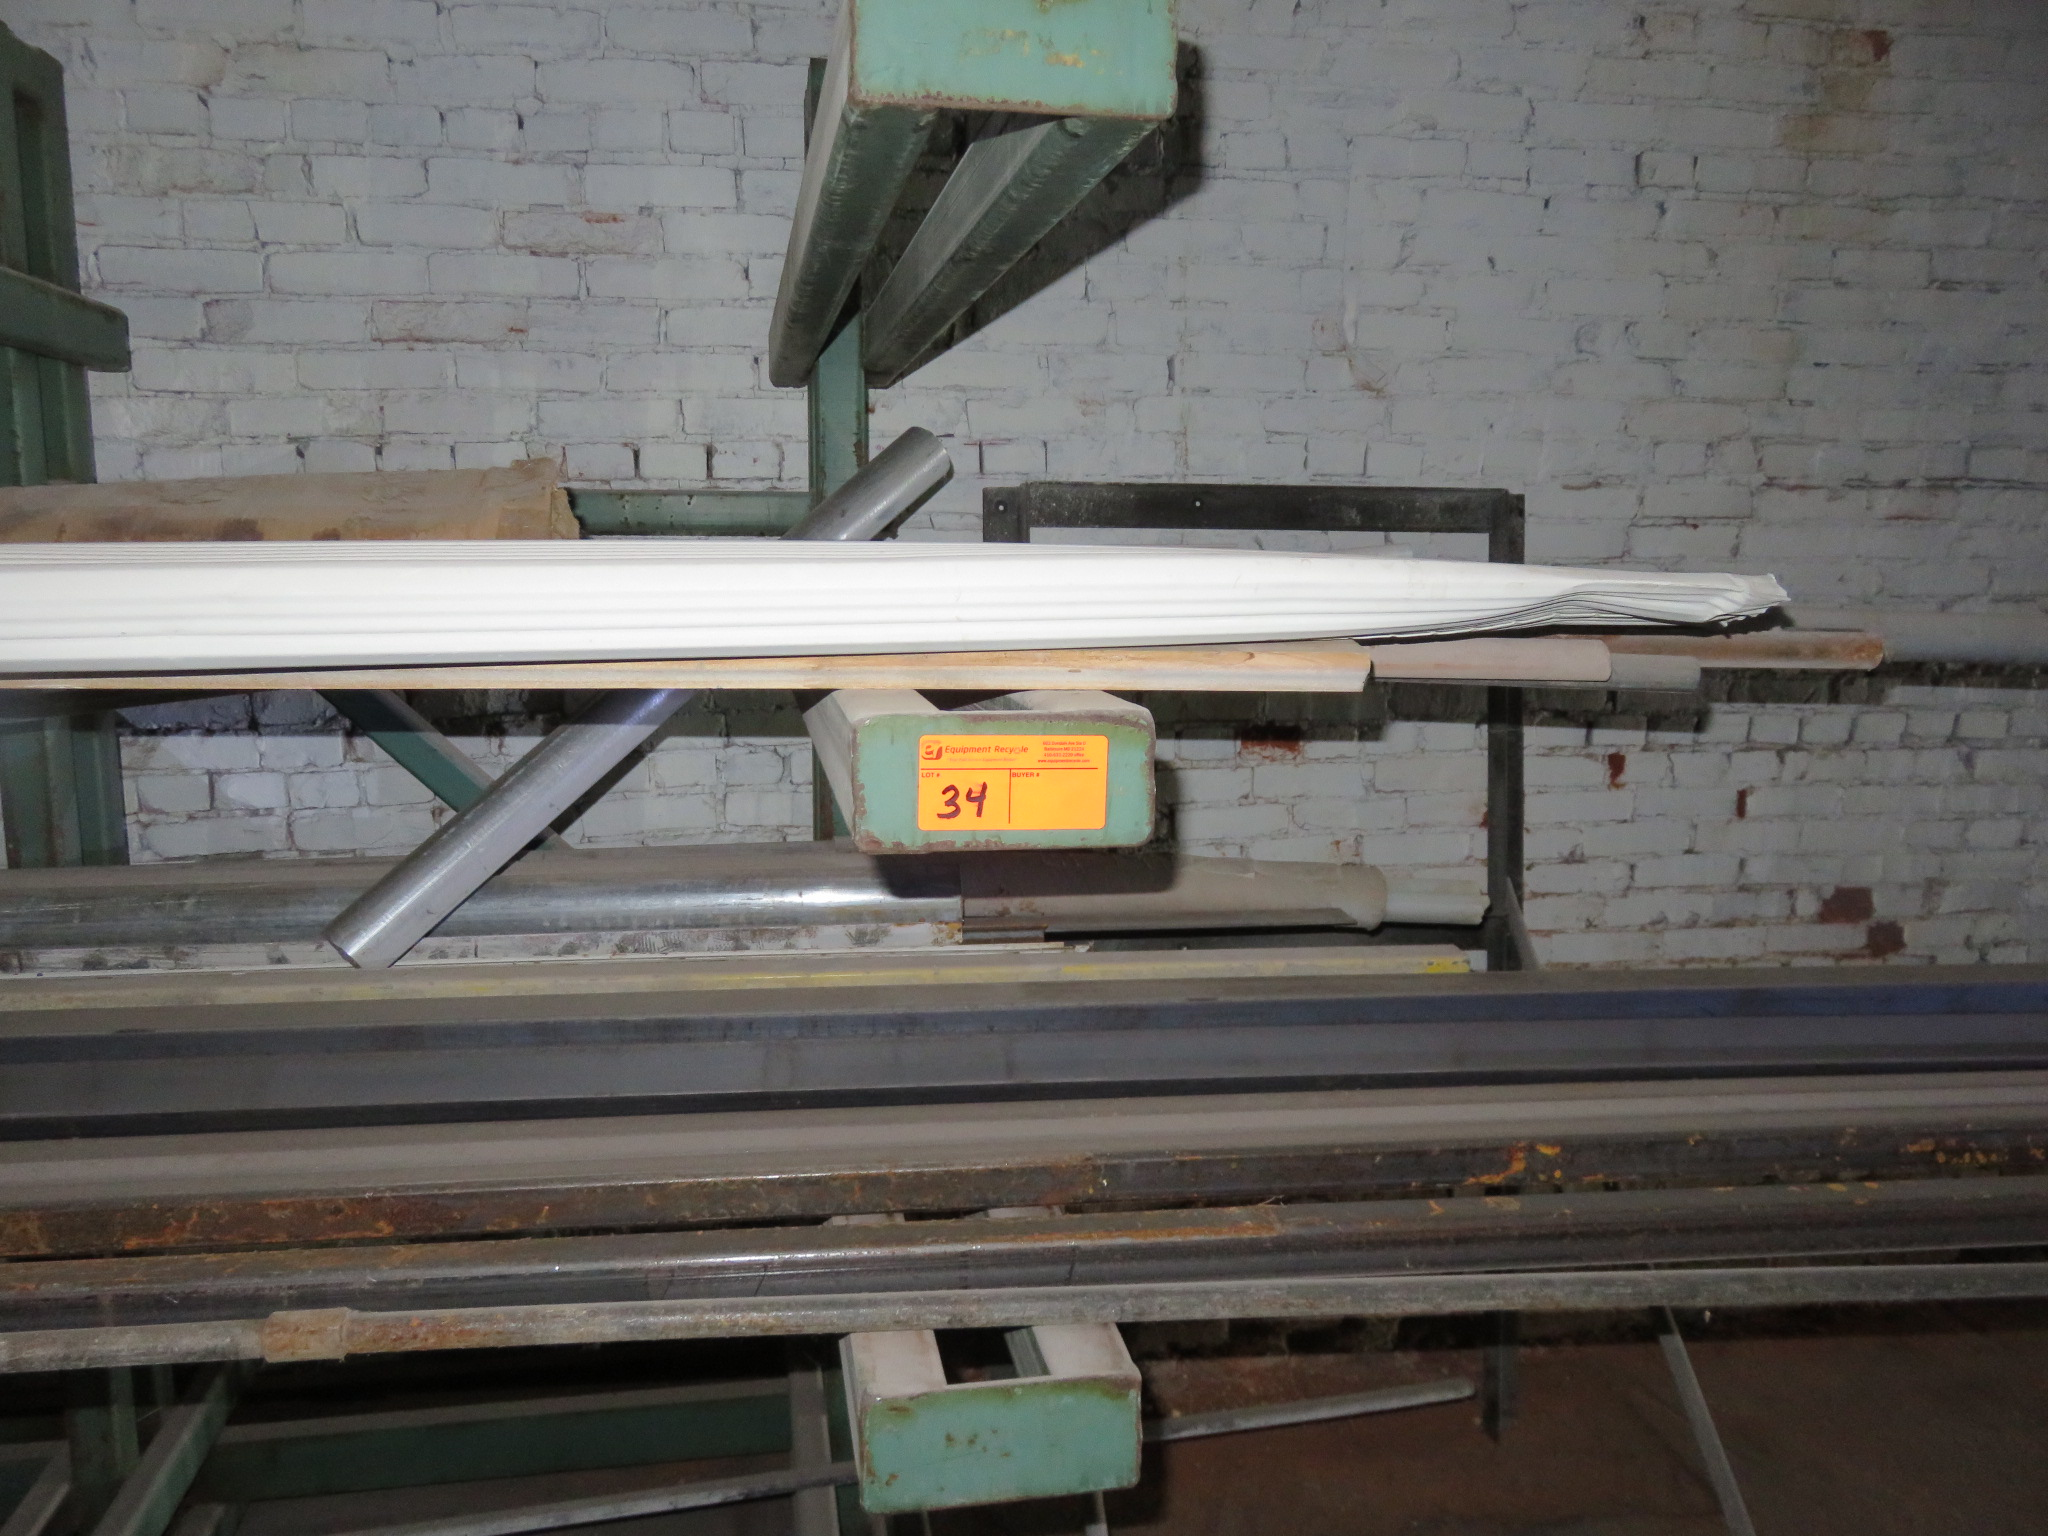 """Heavy Duty Cantilever Racking with Metal Stock Approx.123"""" x 56.5"""" x 82"""" - Image 6 of 6"""